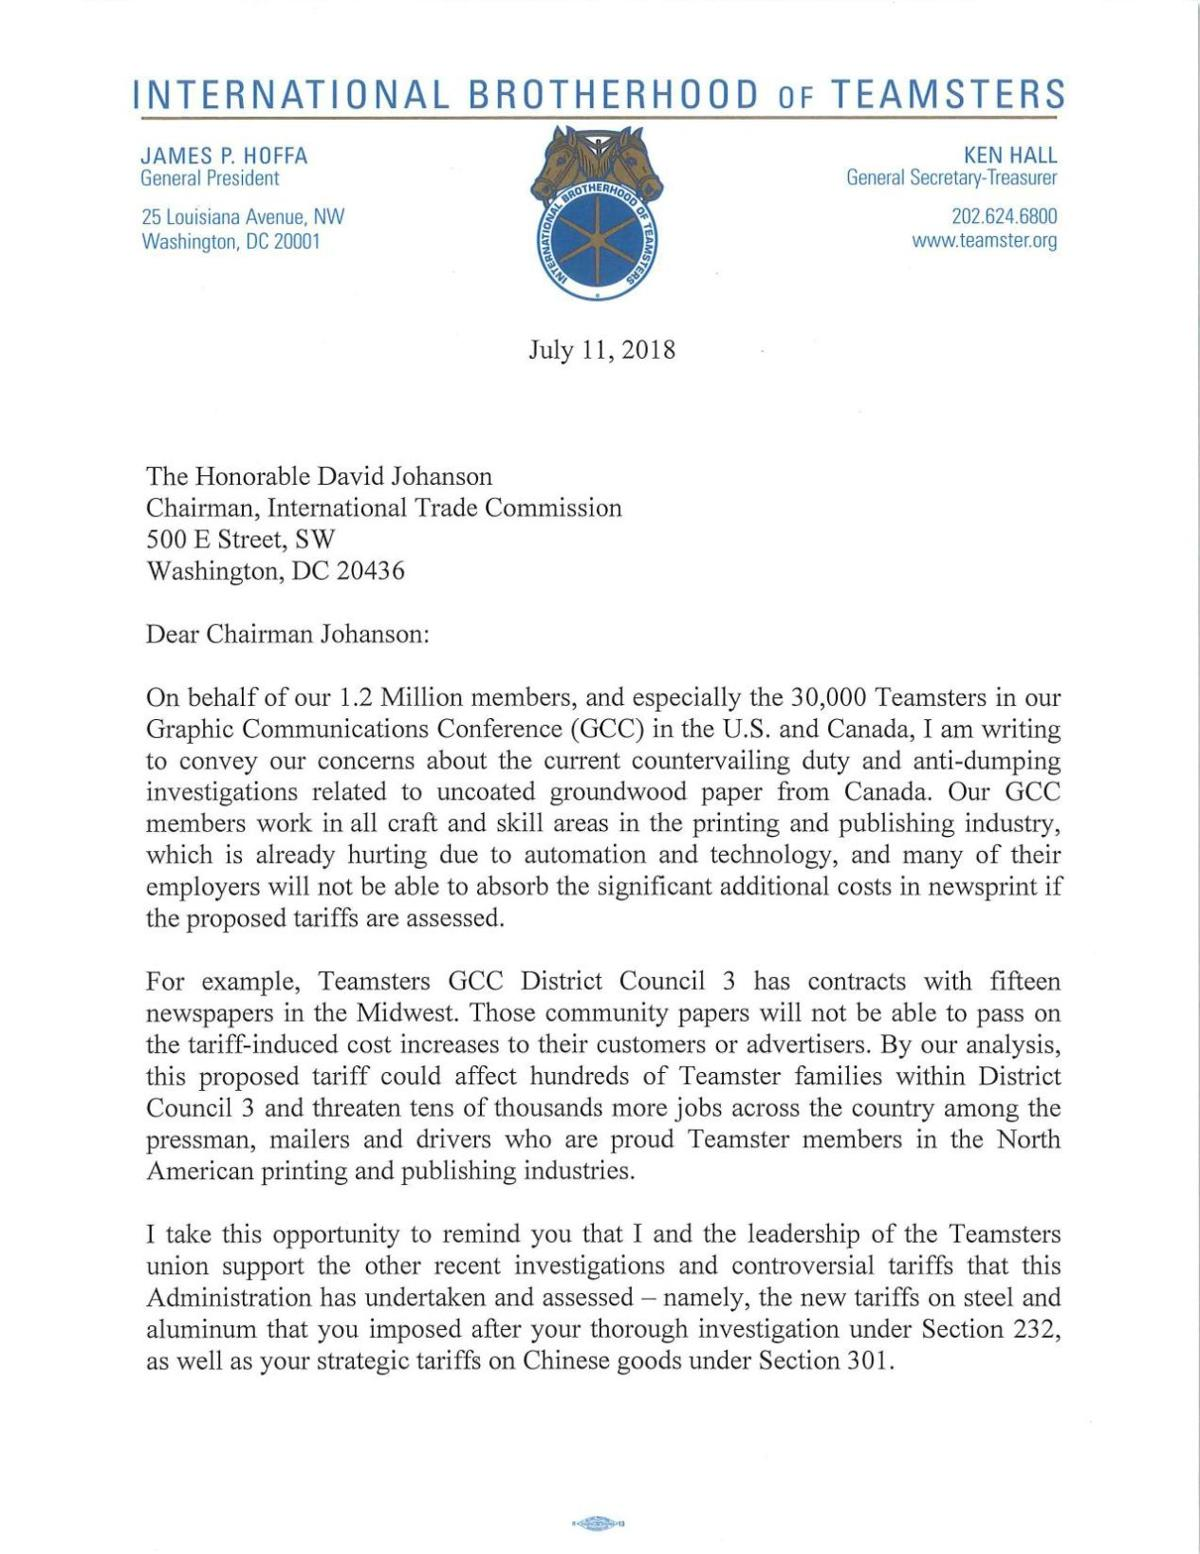 IBT letter to ITC 7-16